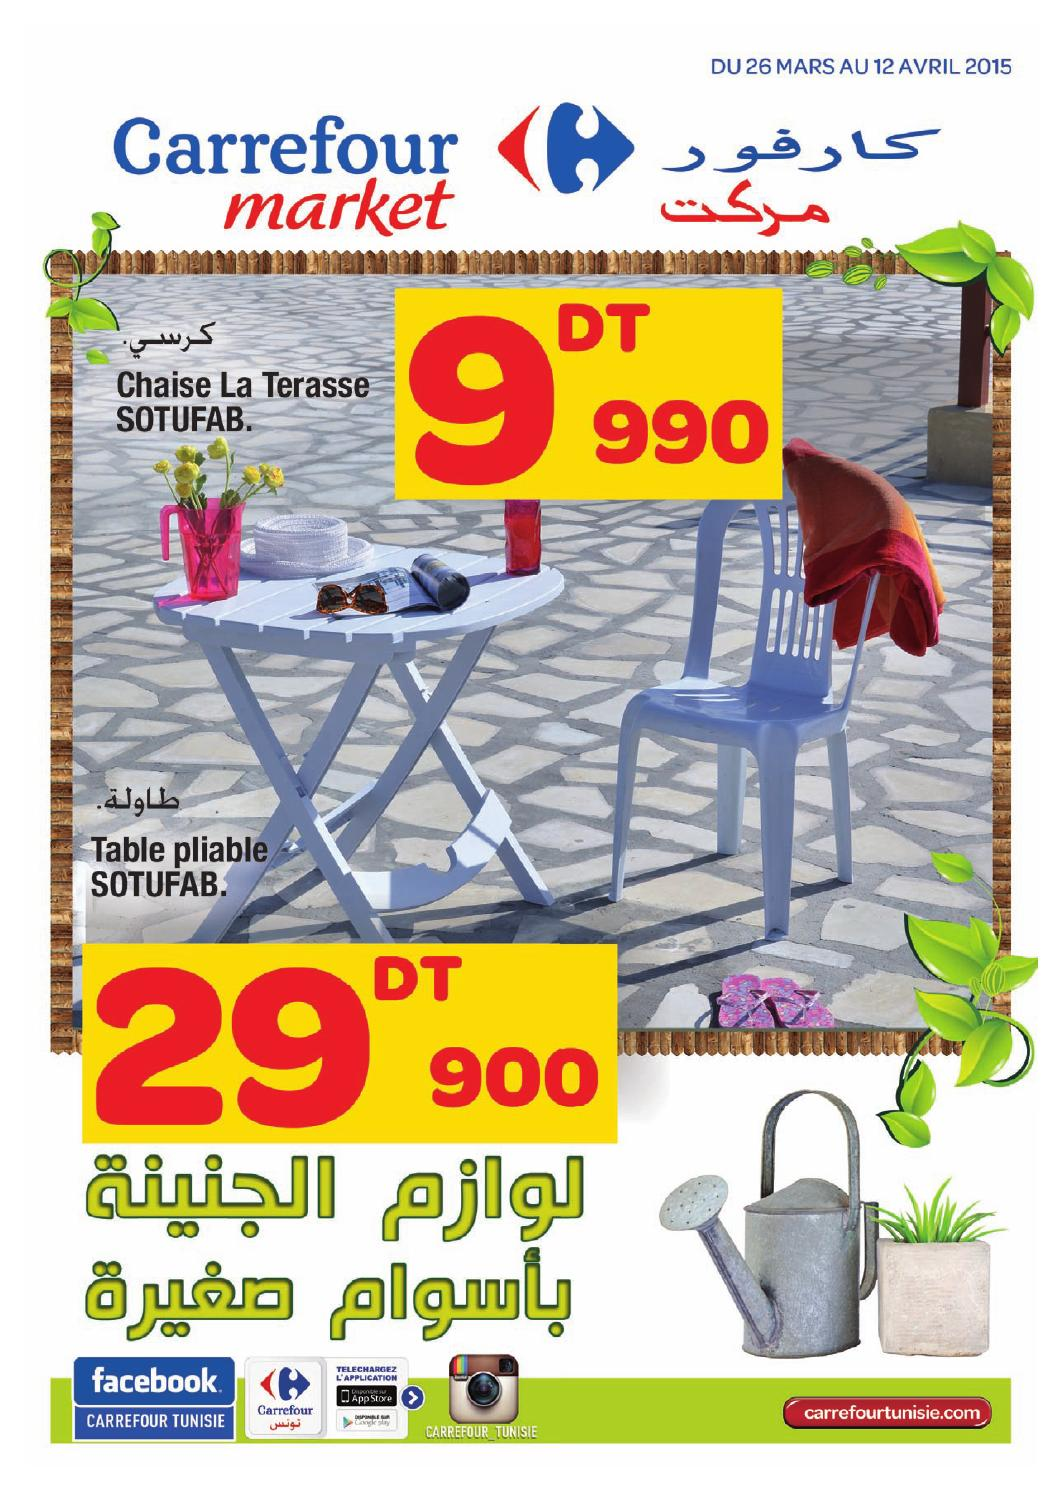 Salon De Jardin Carrefour Online Loveuse Pliante Carrefour Table De Lit